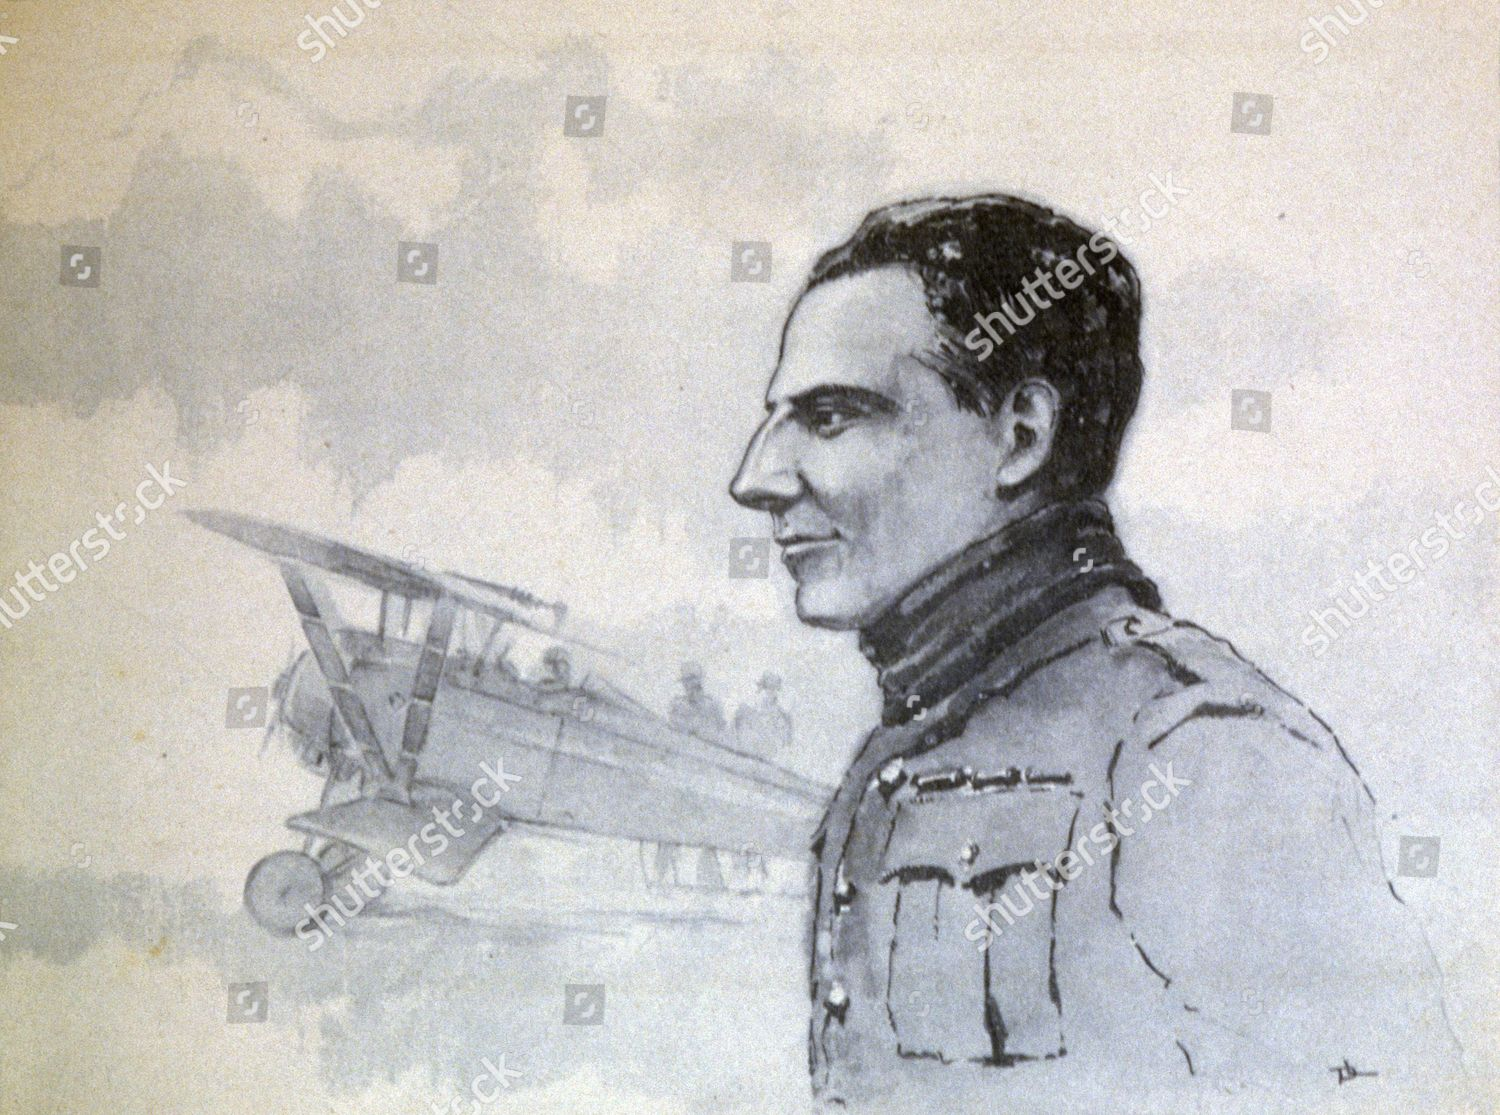 Georgesmarie guynemer 18941917 french fighter pilot ace editorial stock photo stock image shutterstock